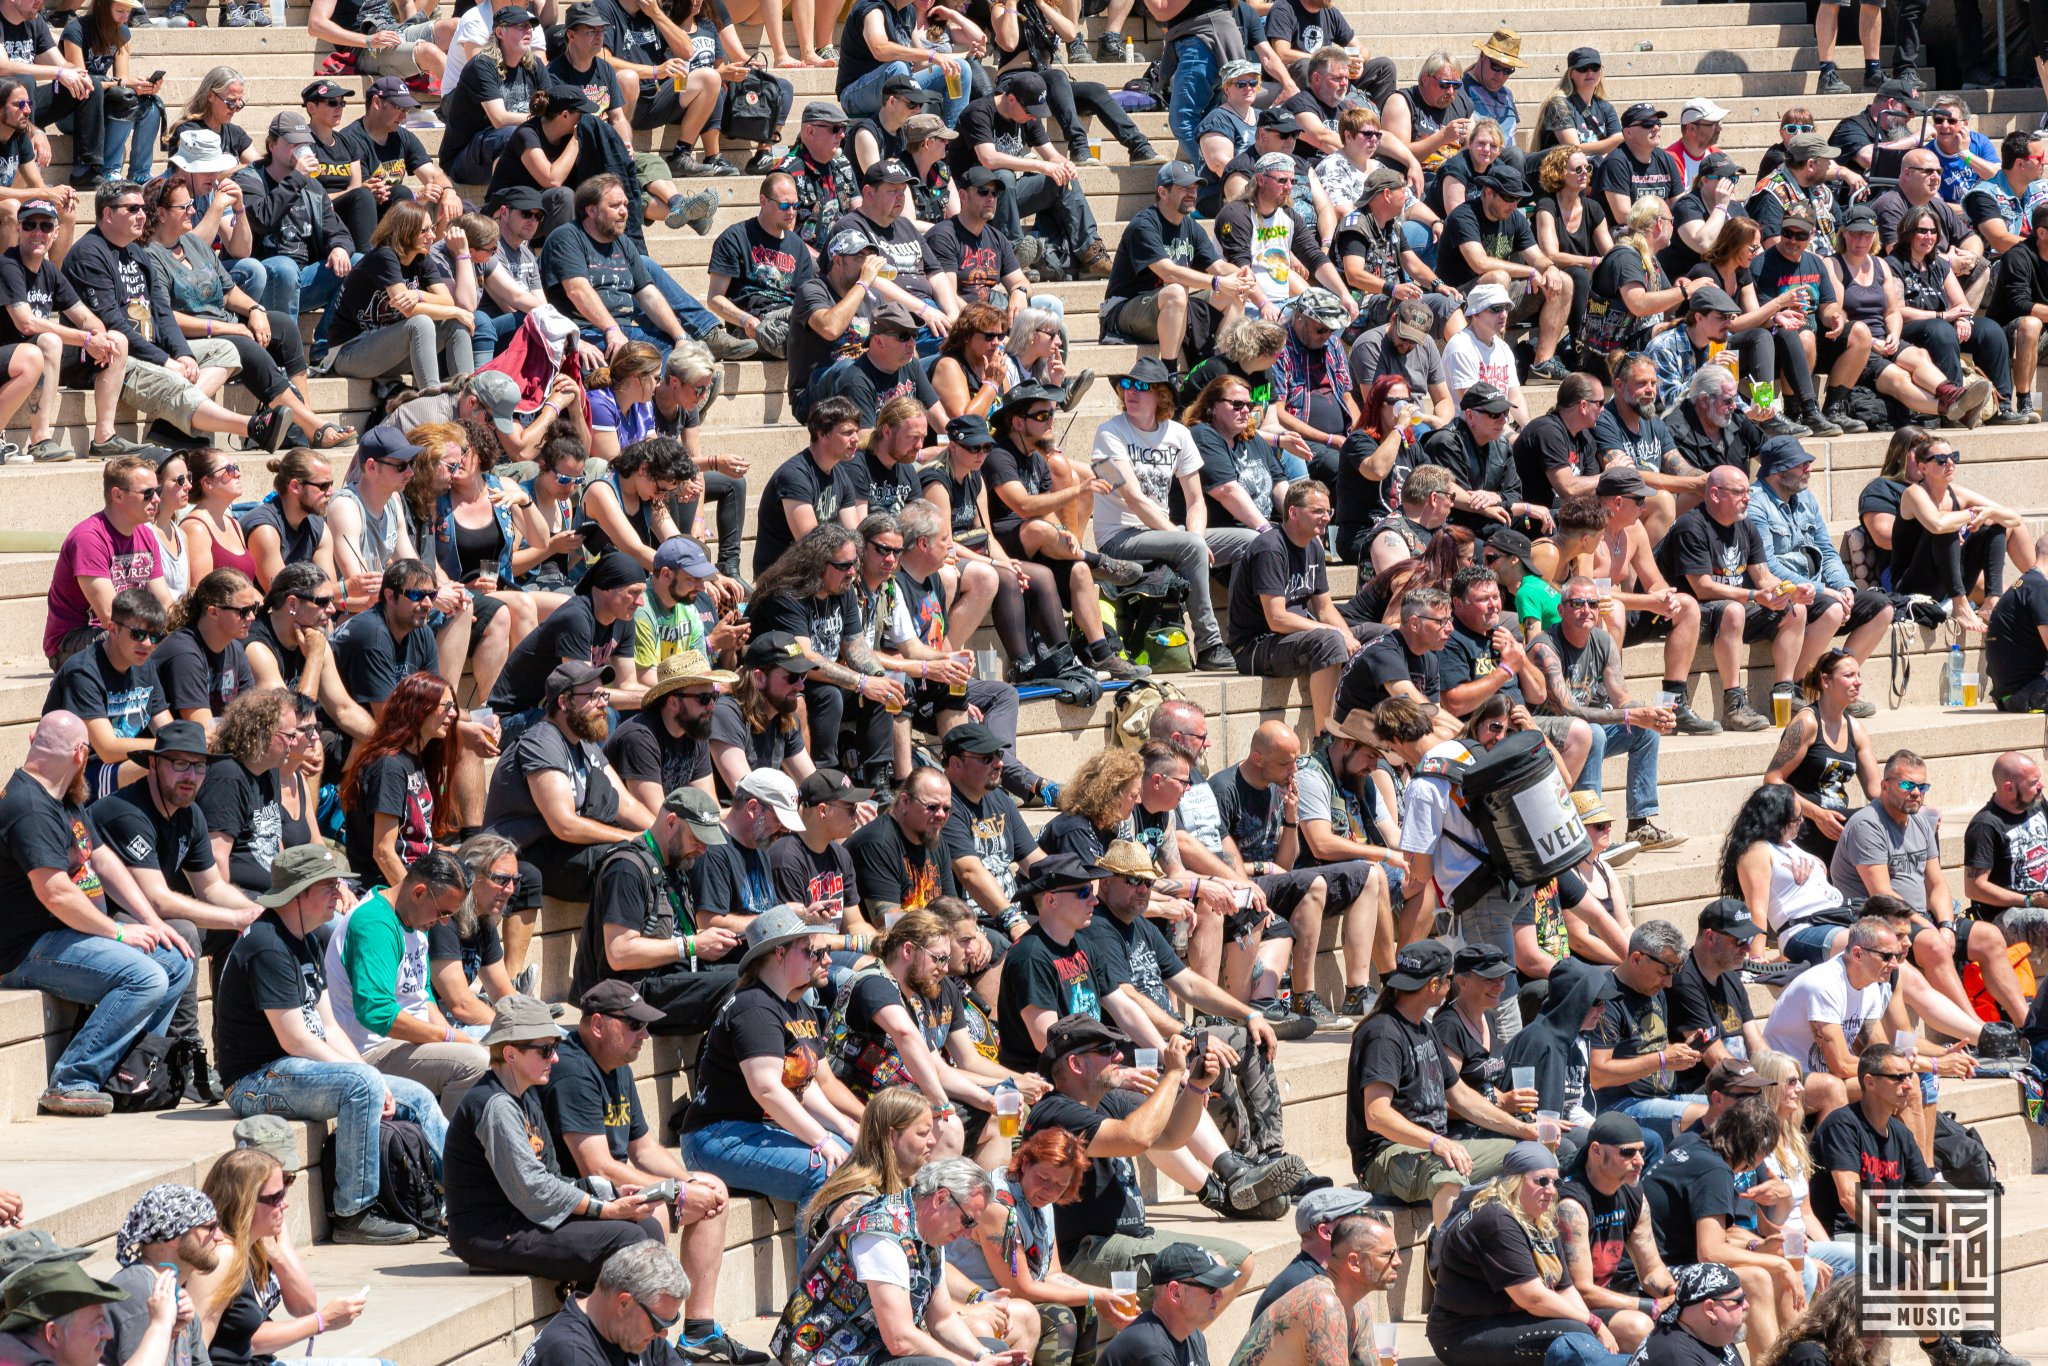 Rock Hard Festival 2019